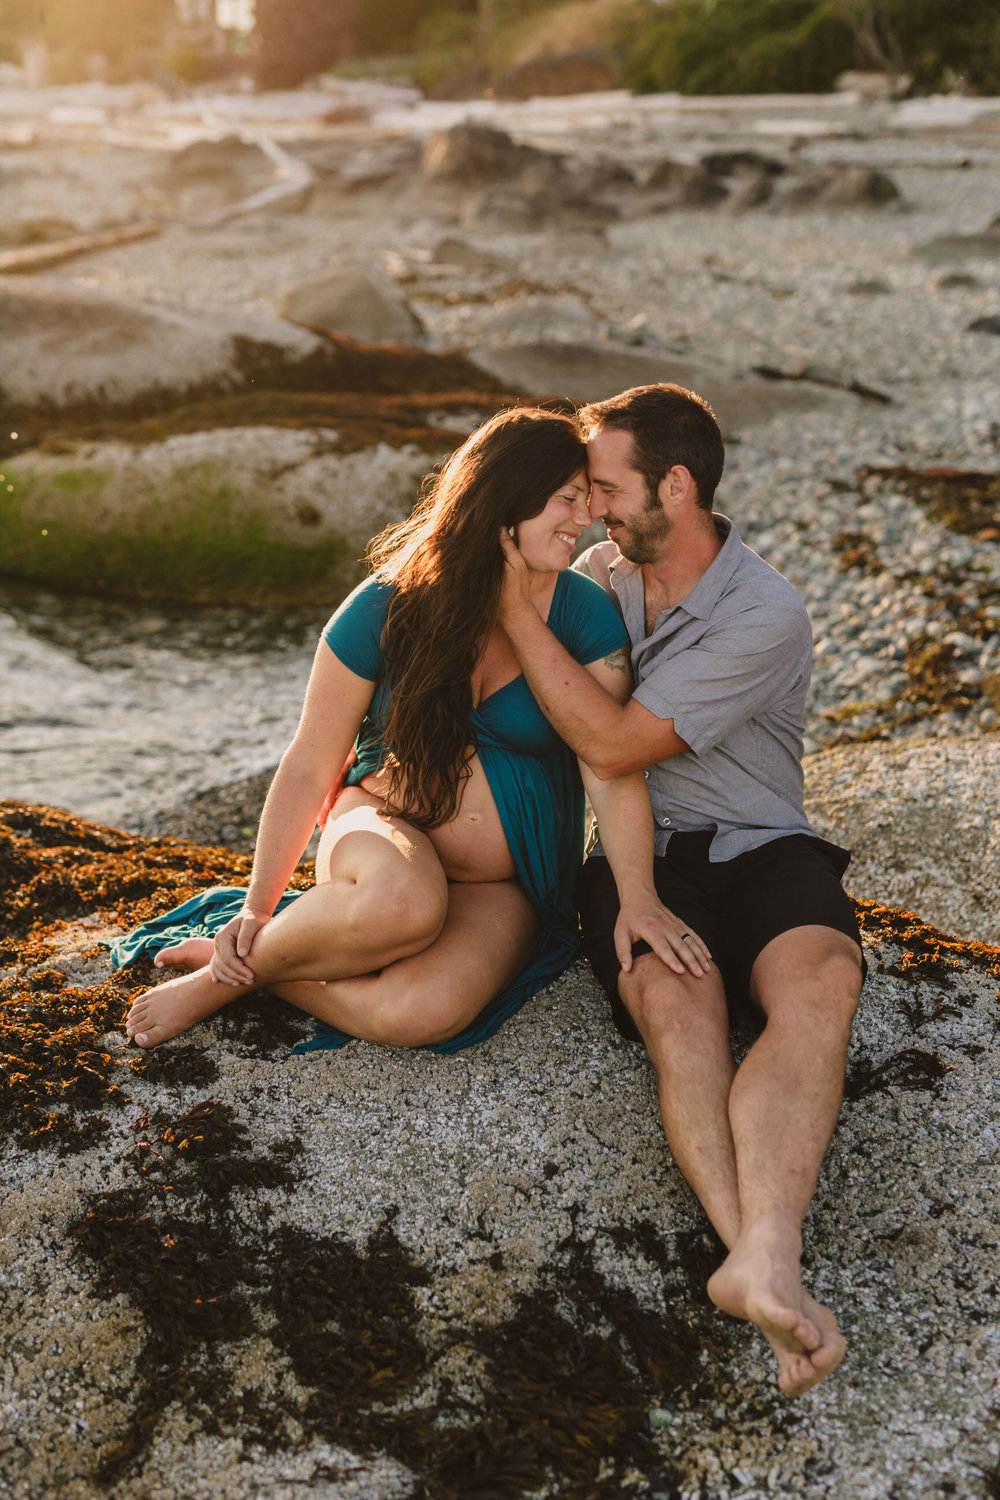 Maternity Photos - Sunshine Coast BC Wedding Photographer - Vancouver Wedding Photographer - Sunshine Coast Elopement Photos - IMG_0768_1.jpg